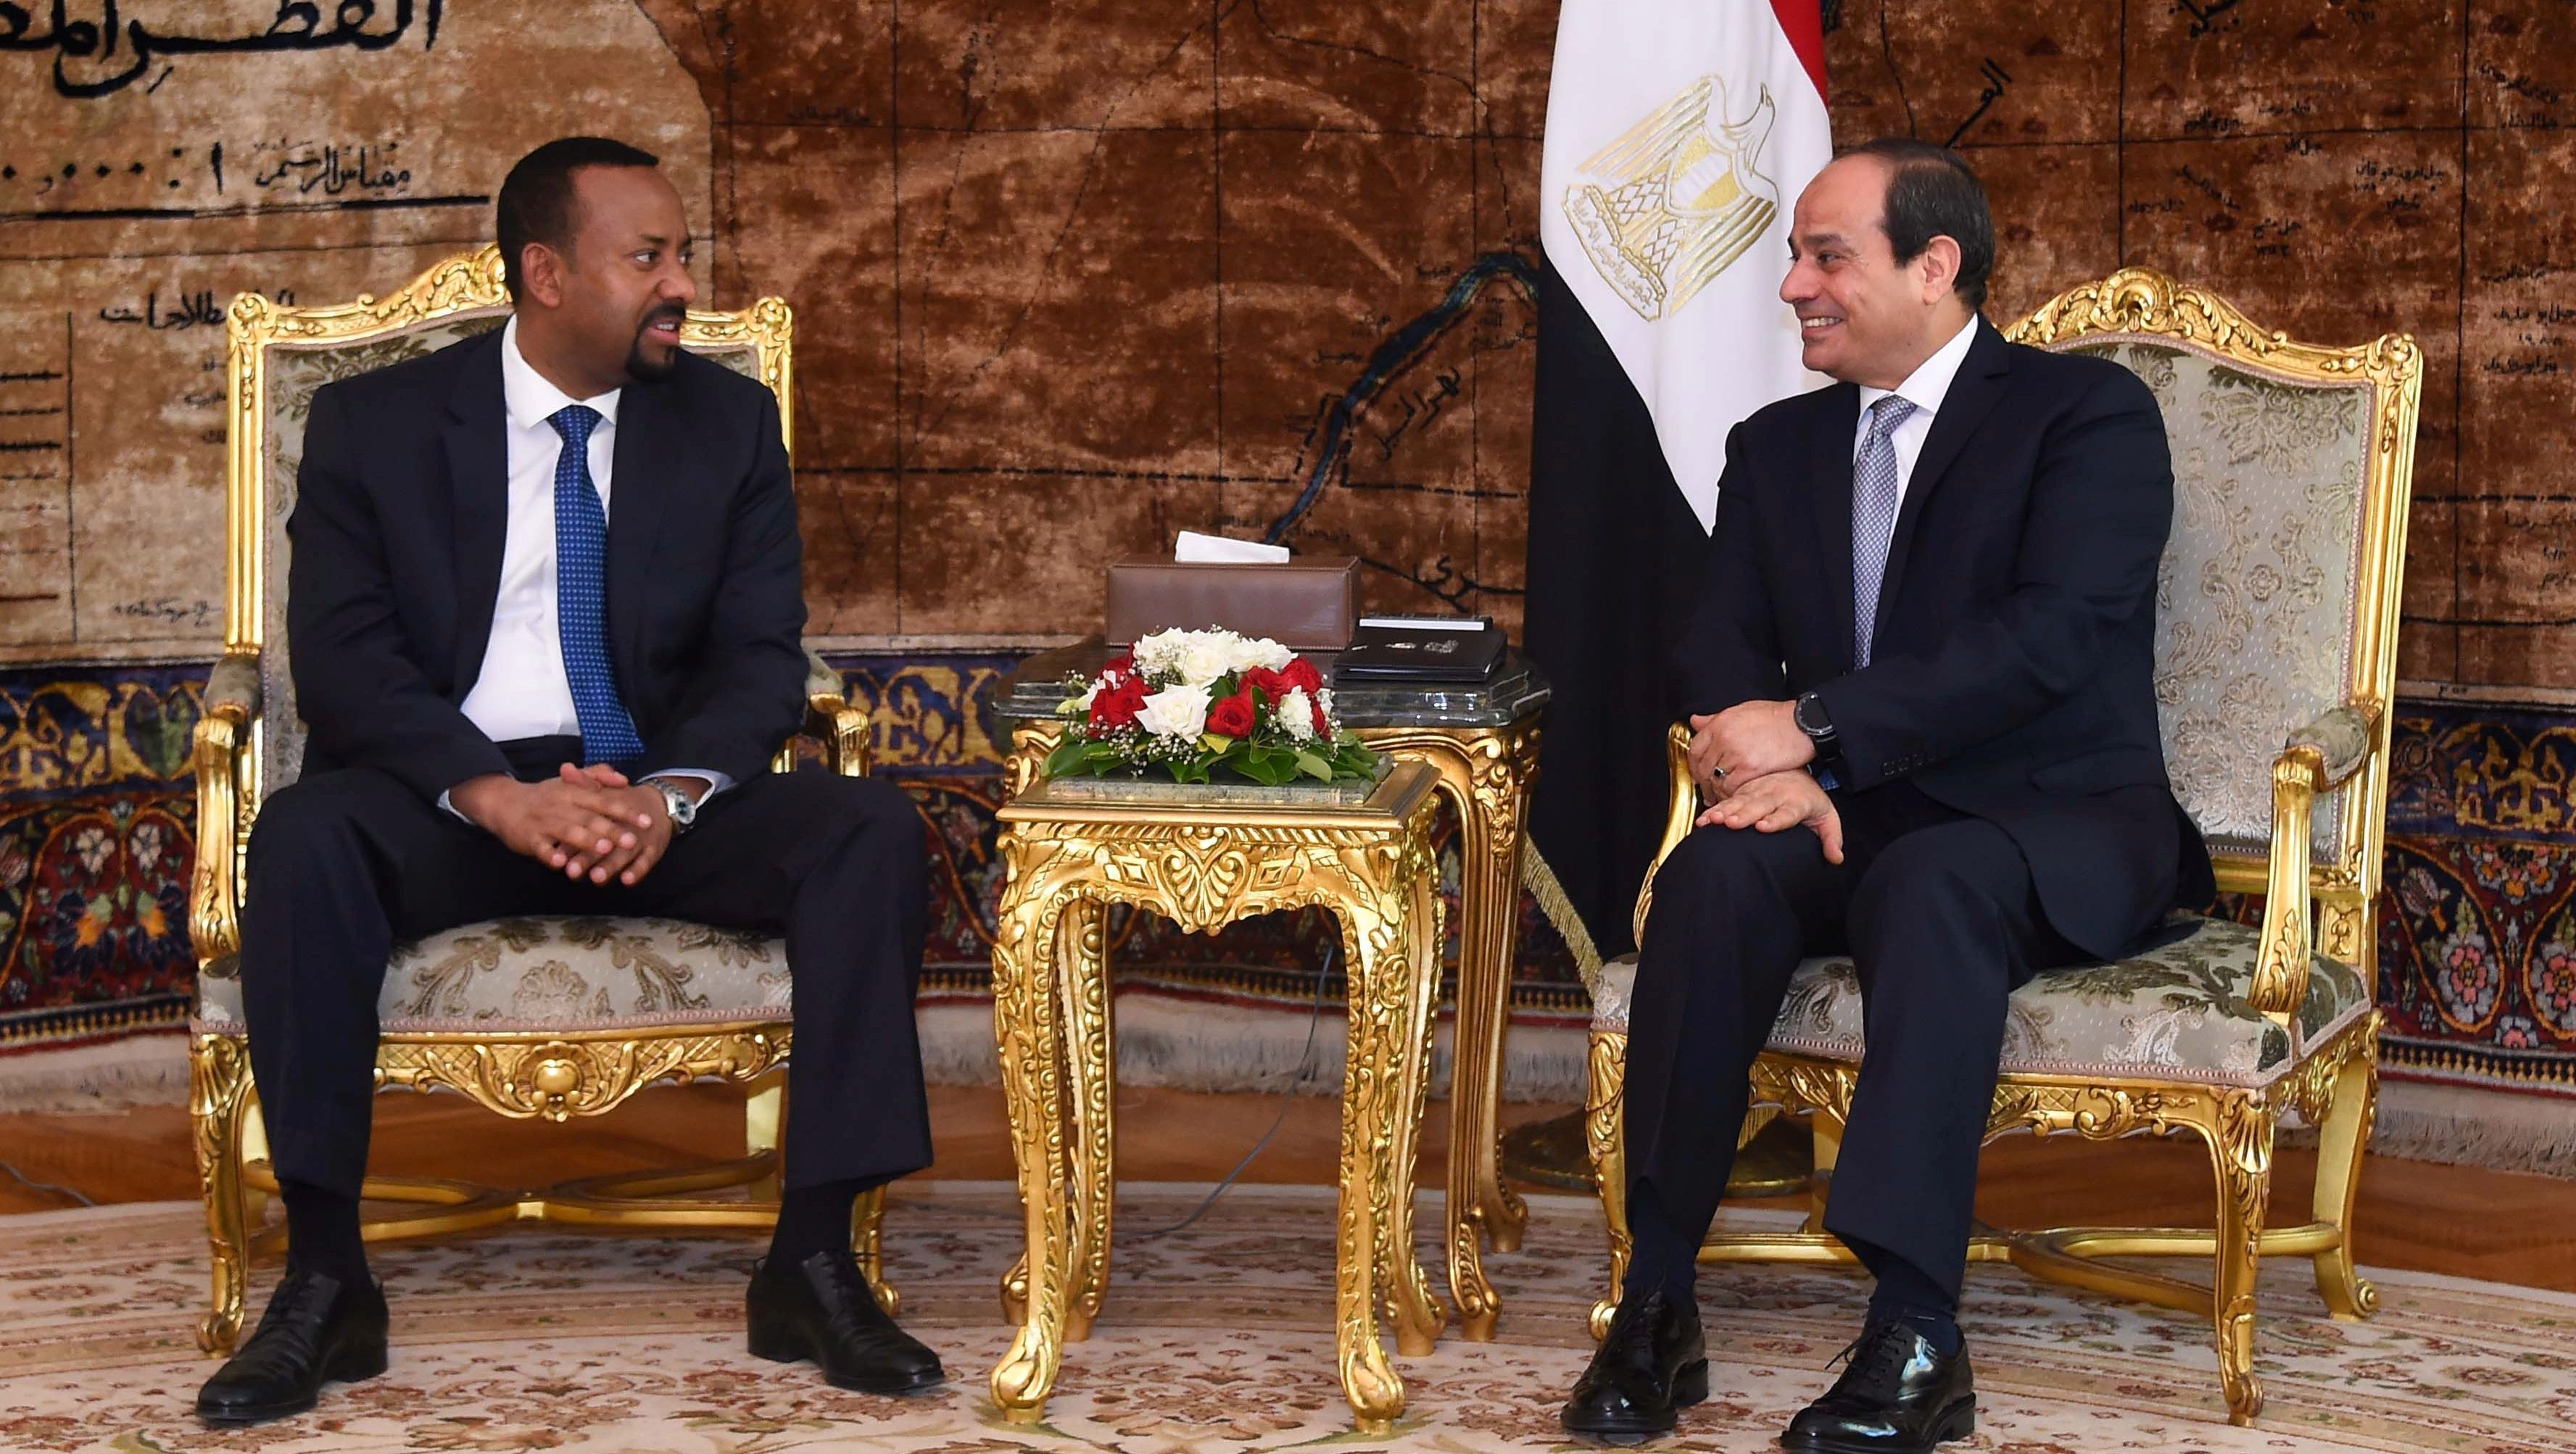 Egyptian President Abdel Fattah al-Sisi (R) meets with Ethiopian Prime Minister Abiy Ahmed at the Ittihadiya presidential palace in Cairo, Egypt, June 10, 2018. in this handout picture courtesy of the Egyptian Presidency. The Egyptian Presidency/Handout via REUTERS ATTENTION EDITORS - THIS IMAGE WAS PROVIDED BY A THIRD PARTY - RC117C687CC0